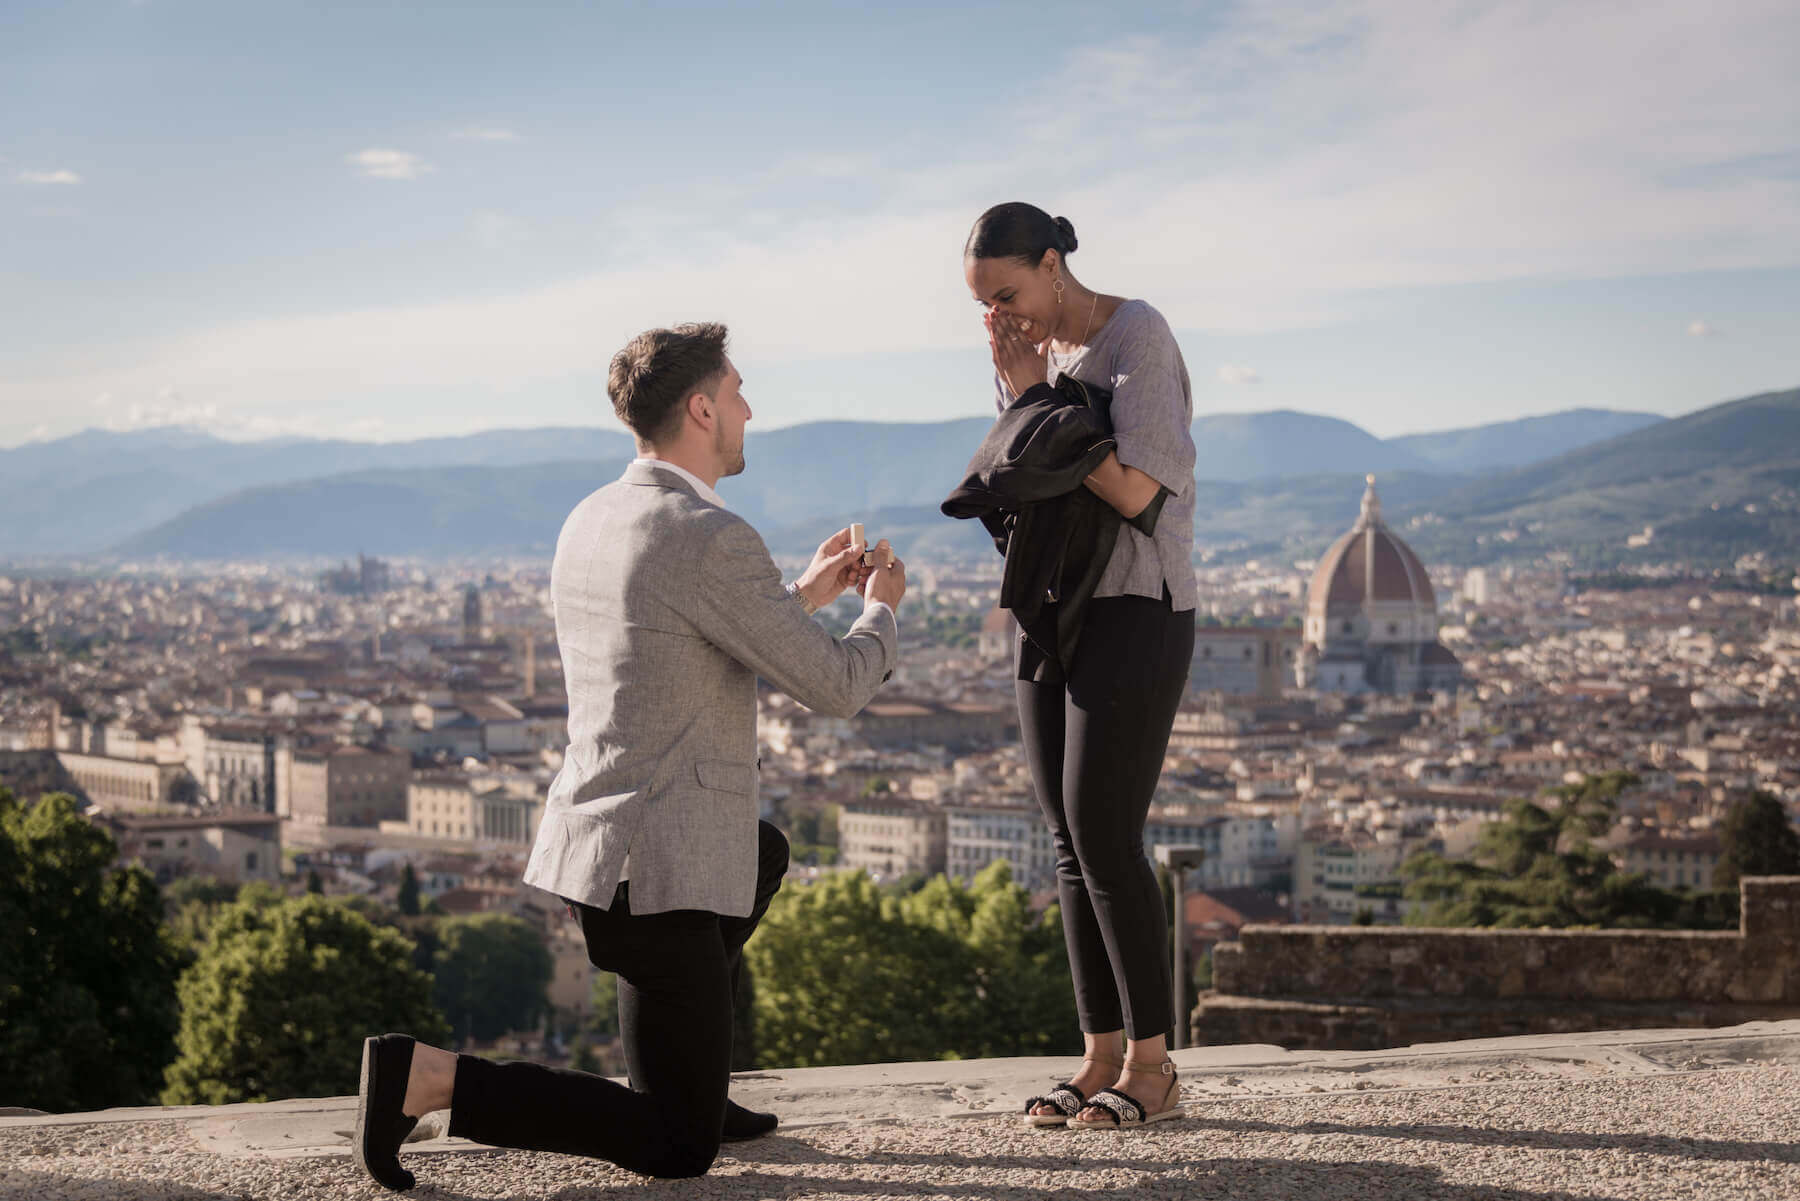 Surprise Flytographer proposal at Piazzale Michelangelo in Florence, Italy